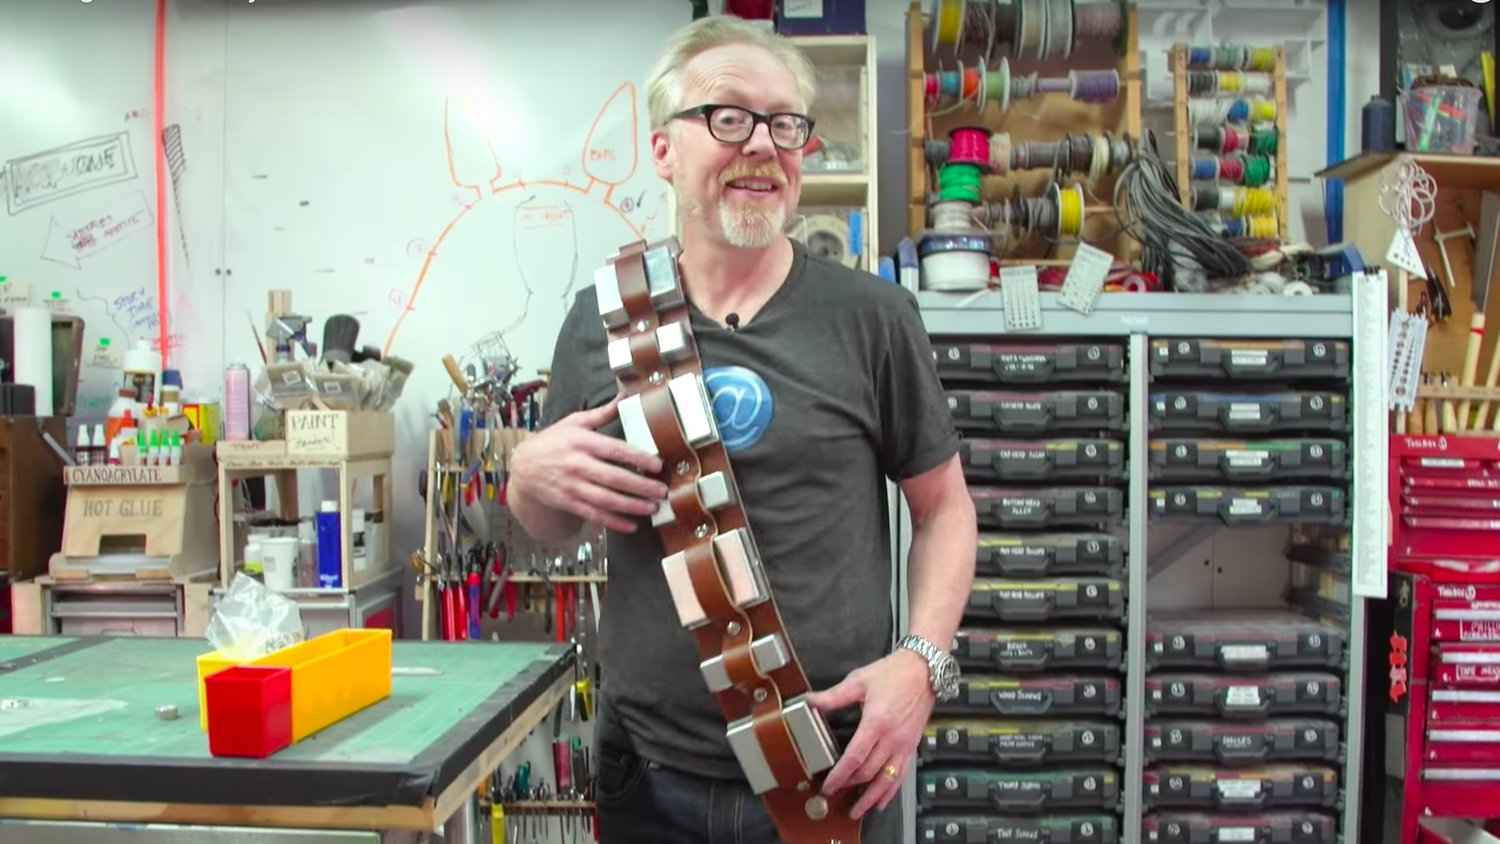 Watch Adam Savage Build Chewbacca's Bandolier in One Day Build